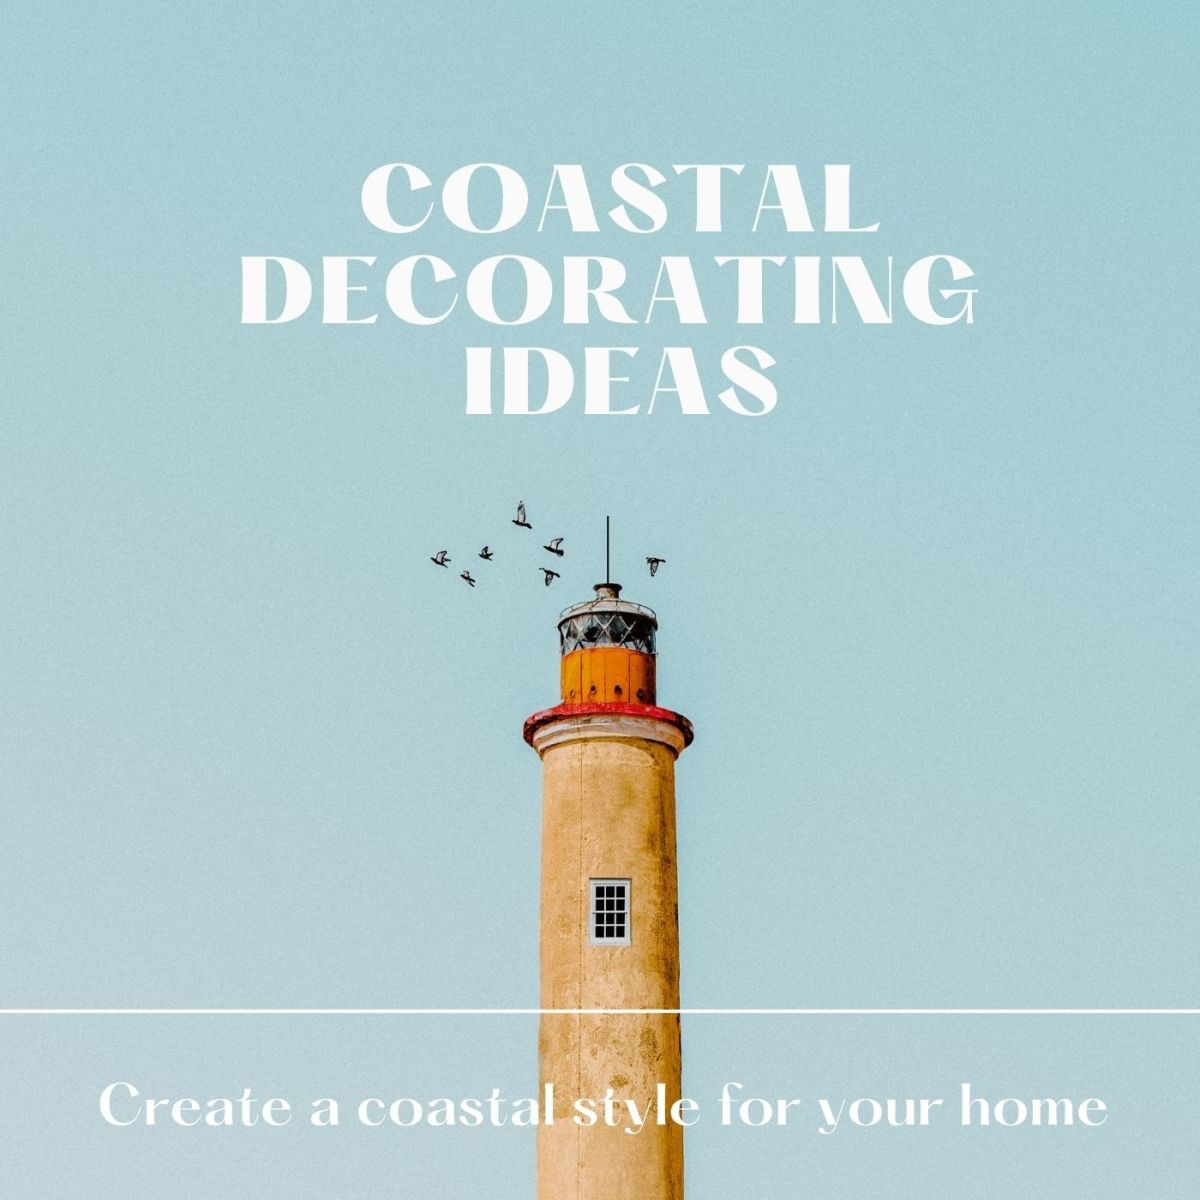 Create a coastal style for your home.